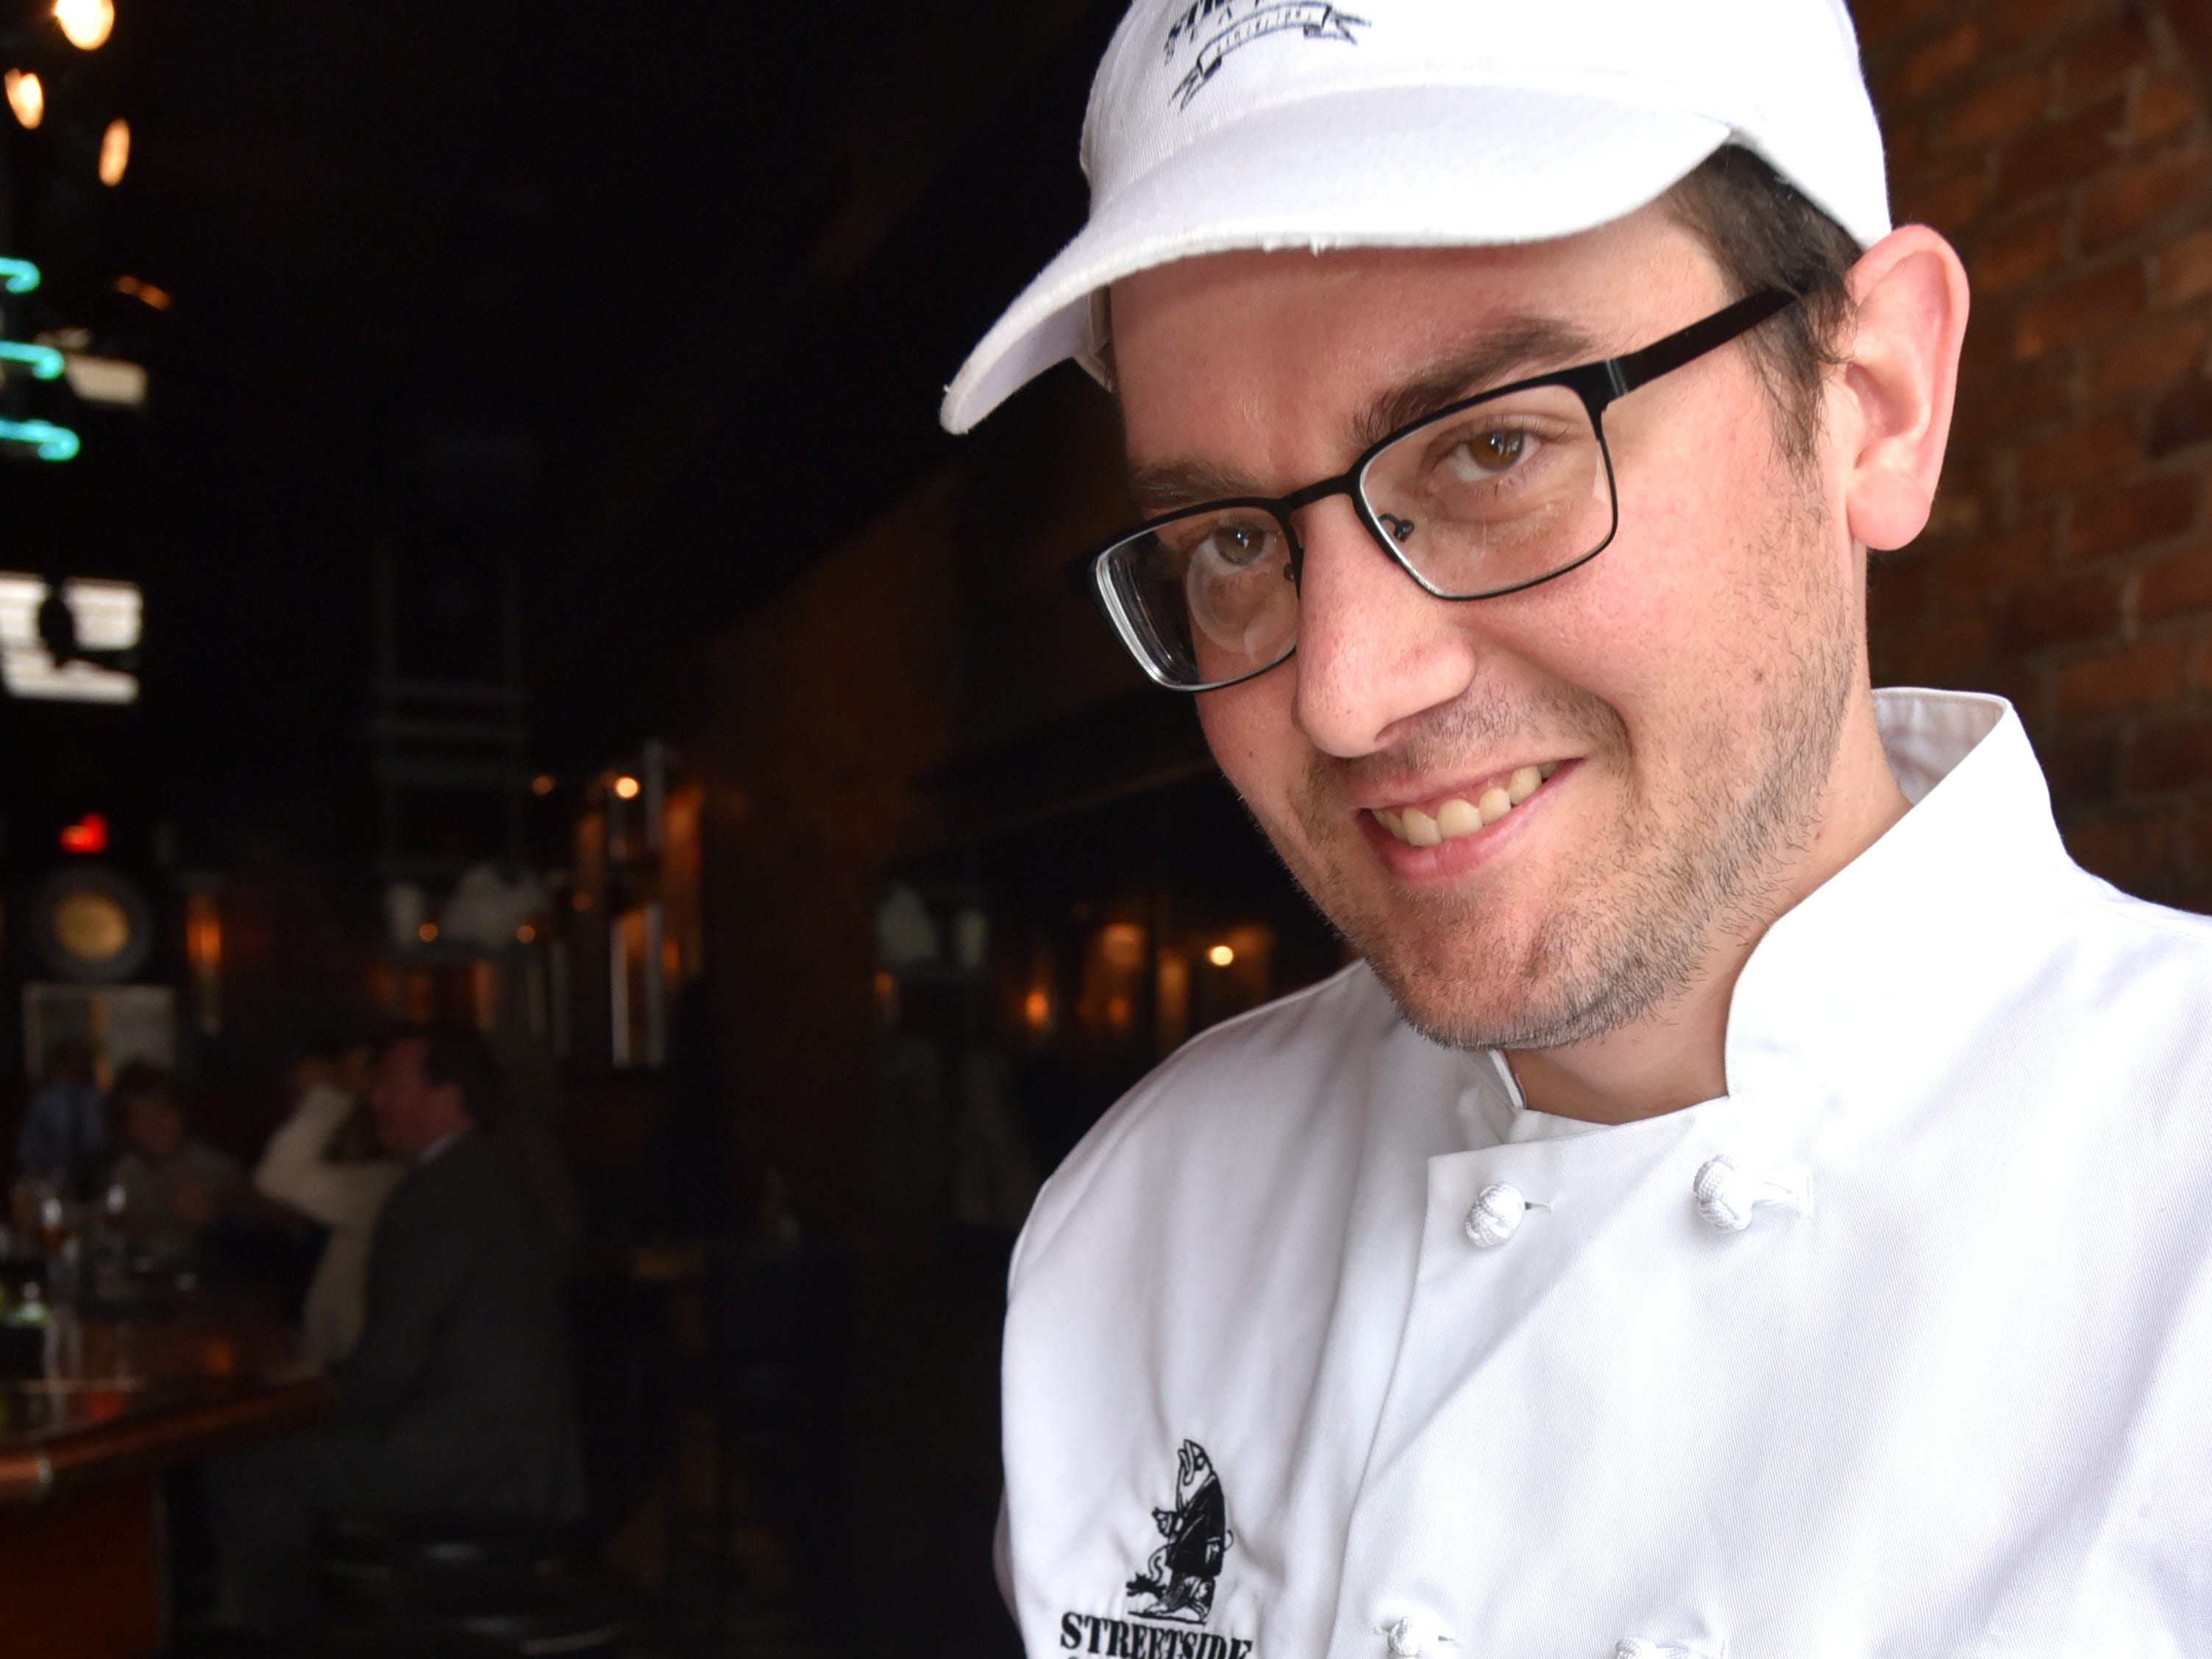 Streetside Seafood executive chef Jonathan Rickloff displays the Birmingham restaurant's seafood arrabiata woith shrimp, scallops and mussels.